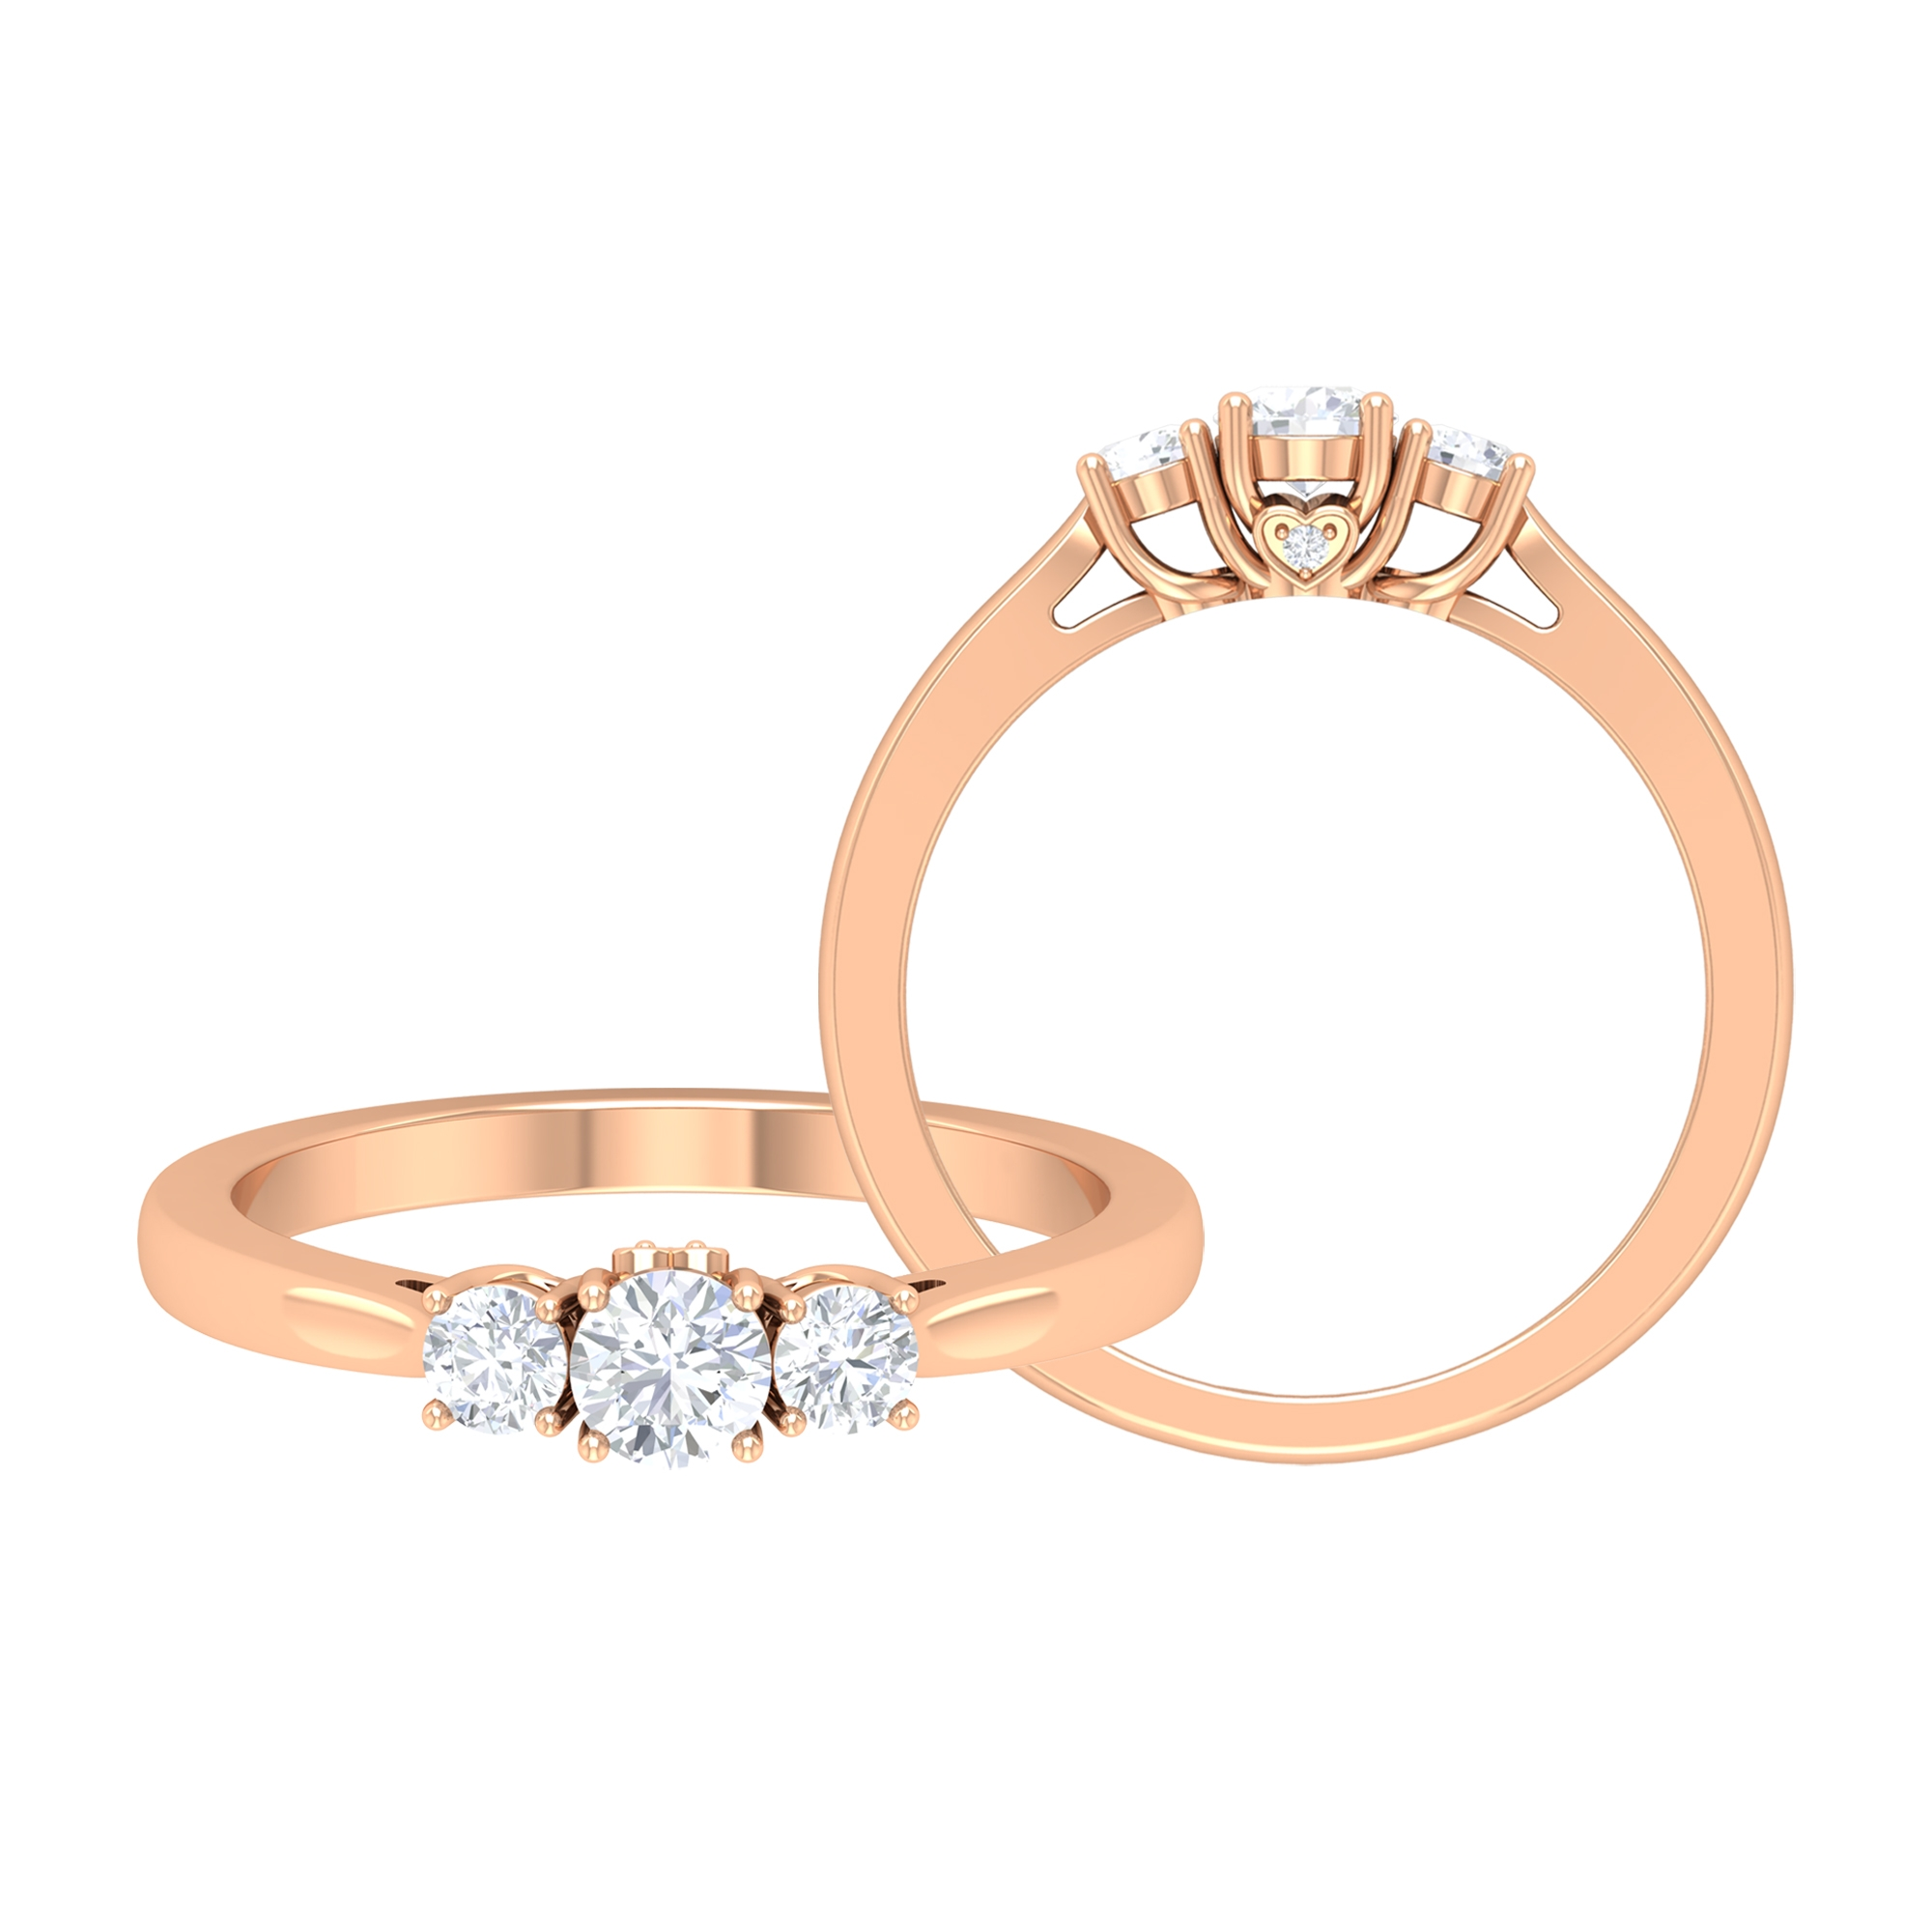 1/2 CT Diamond Three Stone Ring in Prong Setting with Surprise Style